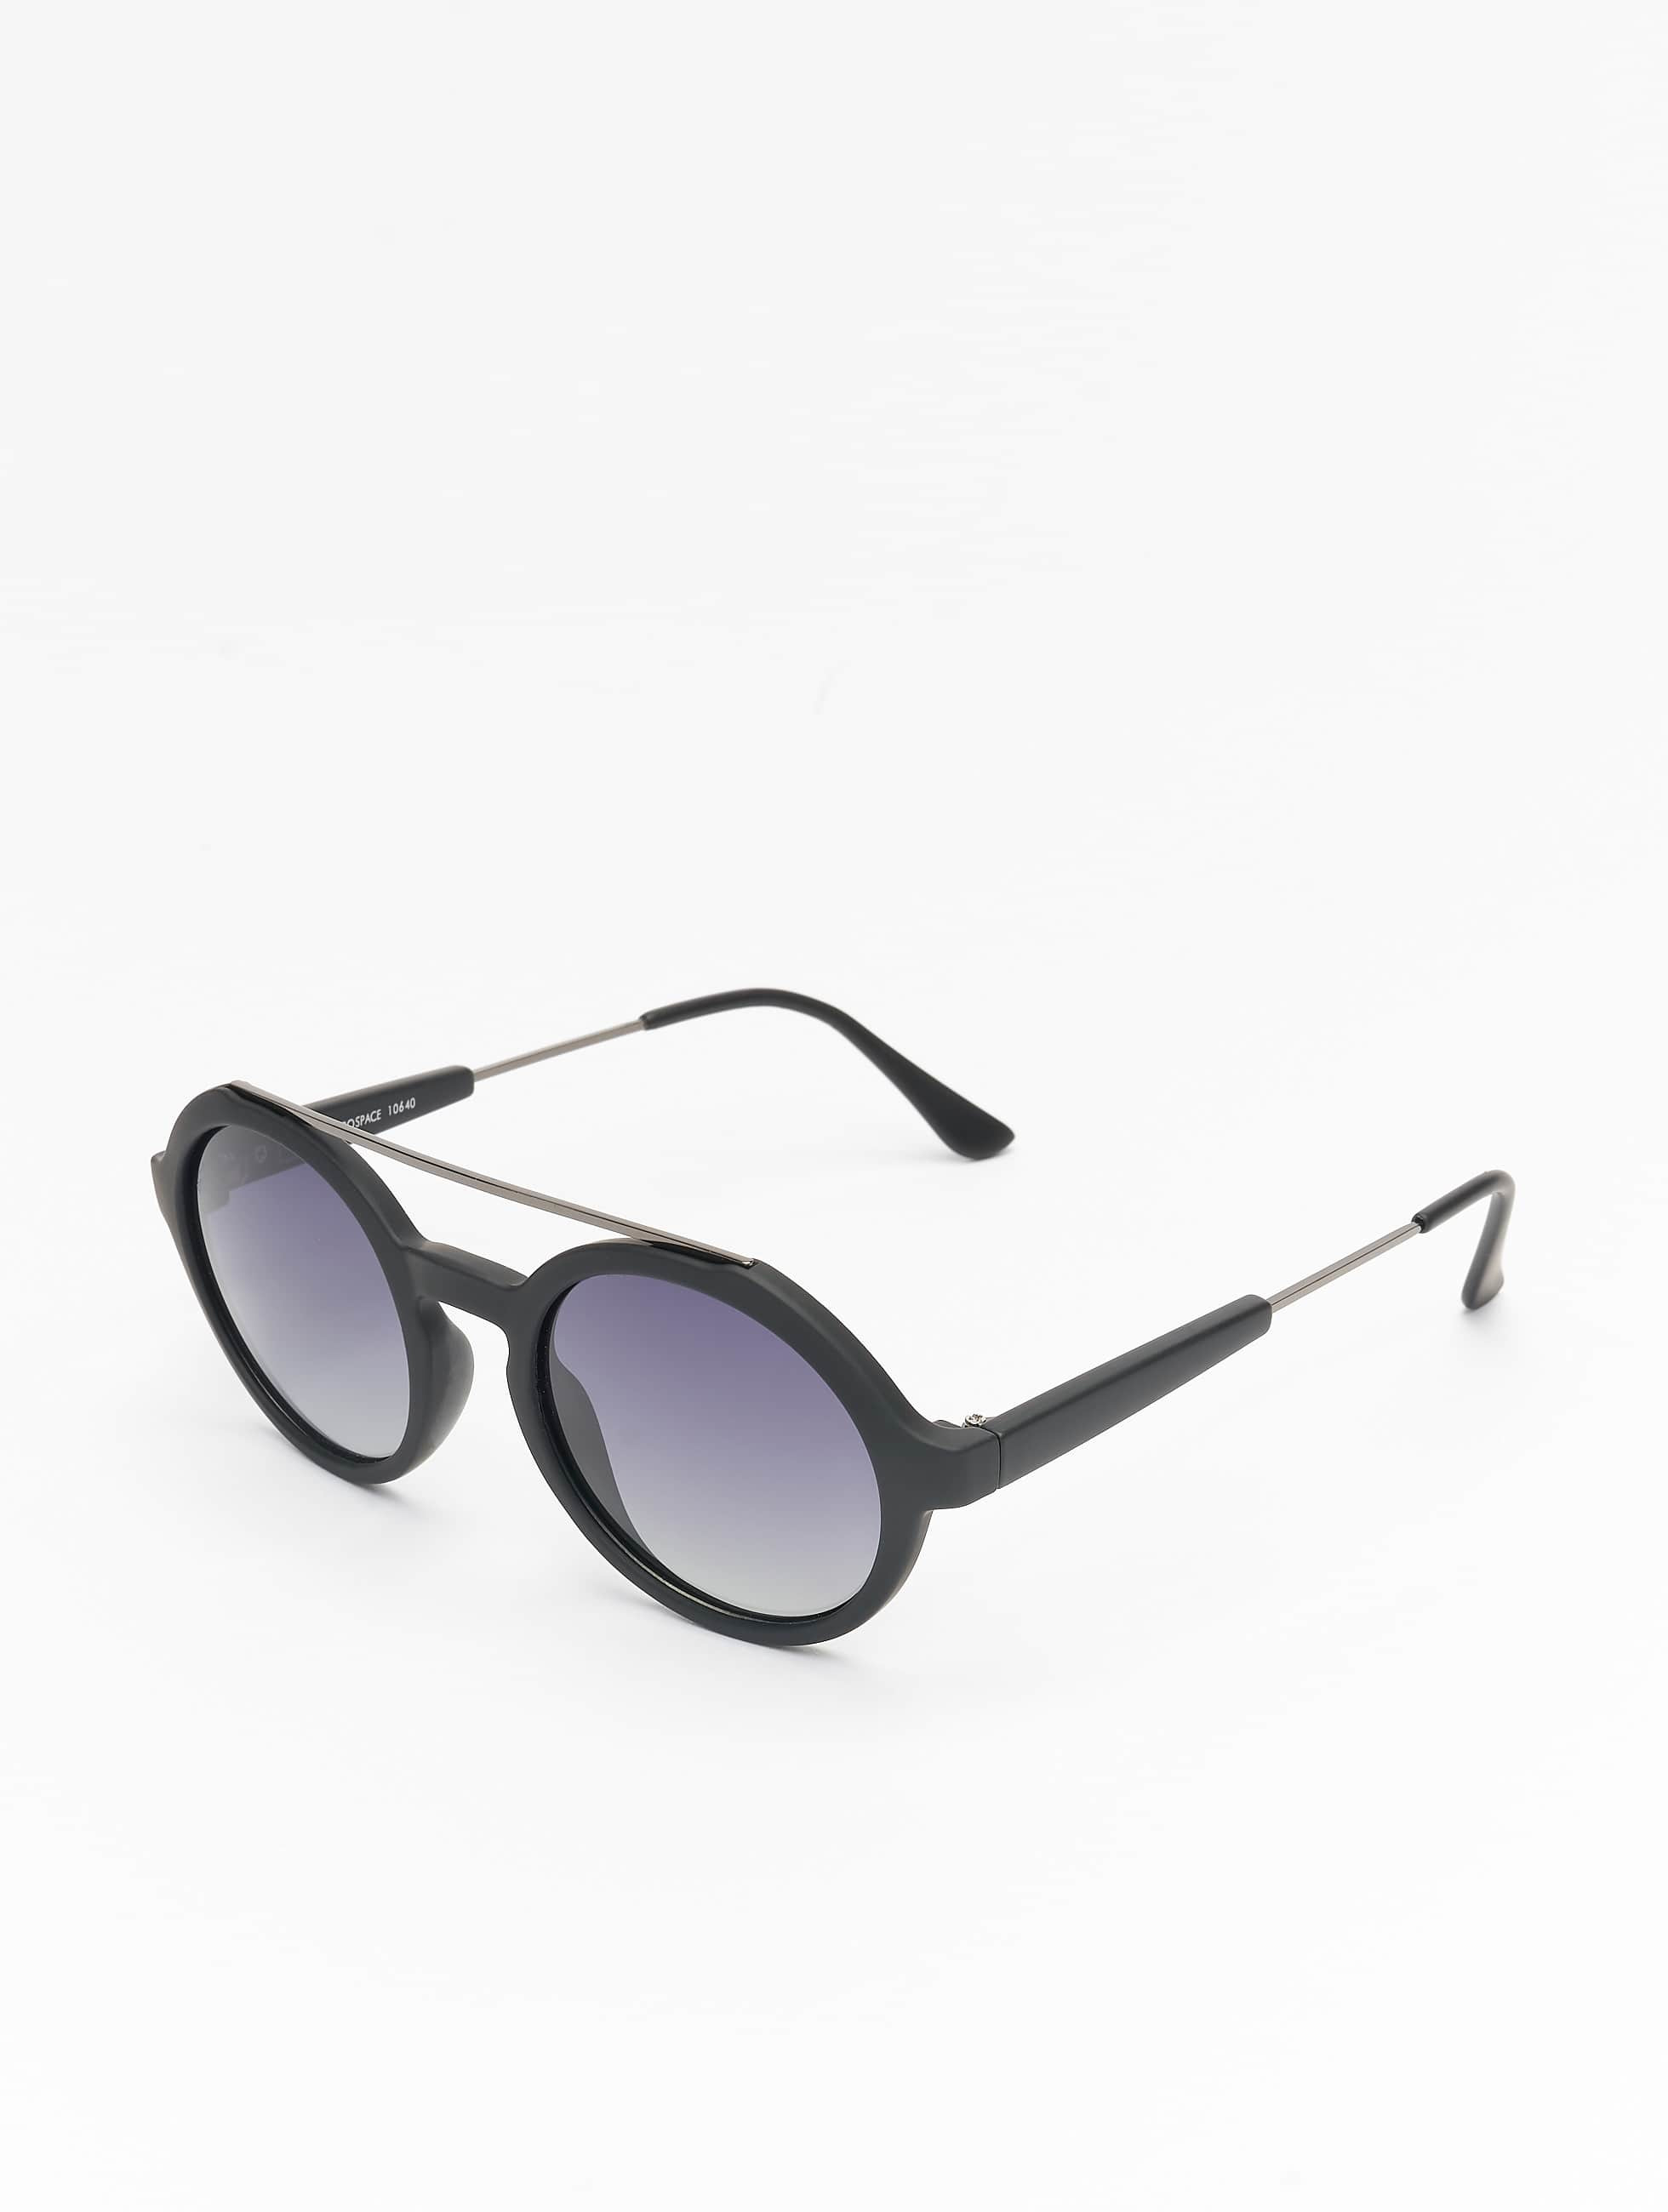 MSTRDS Solglasögon Retro Space Polarized Mirror svart